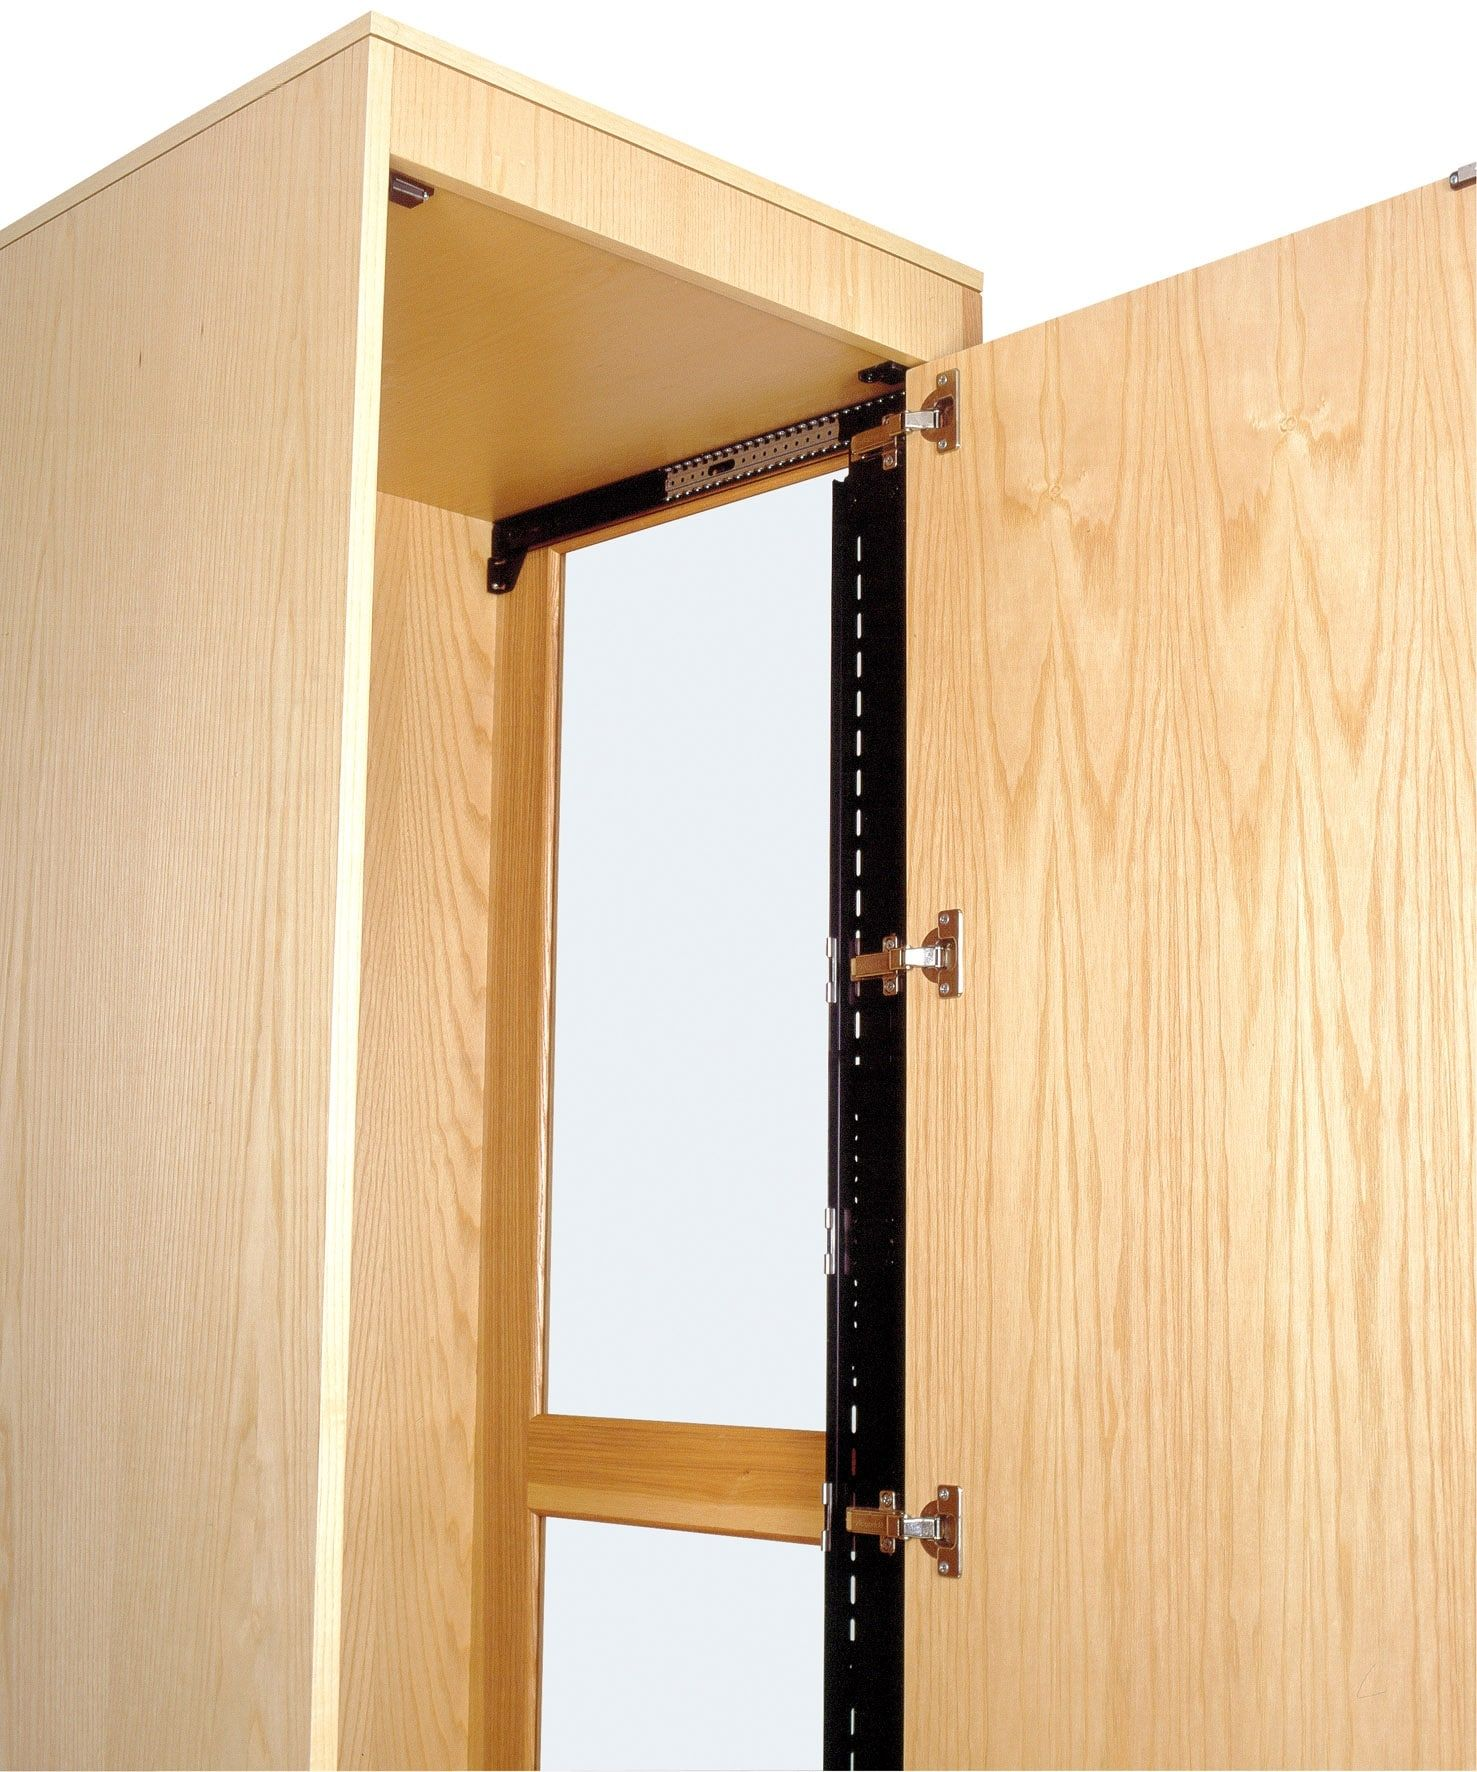 Cabinet Pocket Door Slide Pocket Doors Diy Cabinet Doors Cupboard Door Hinges